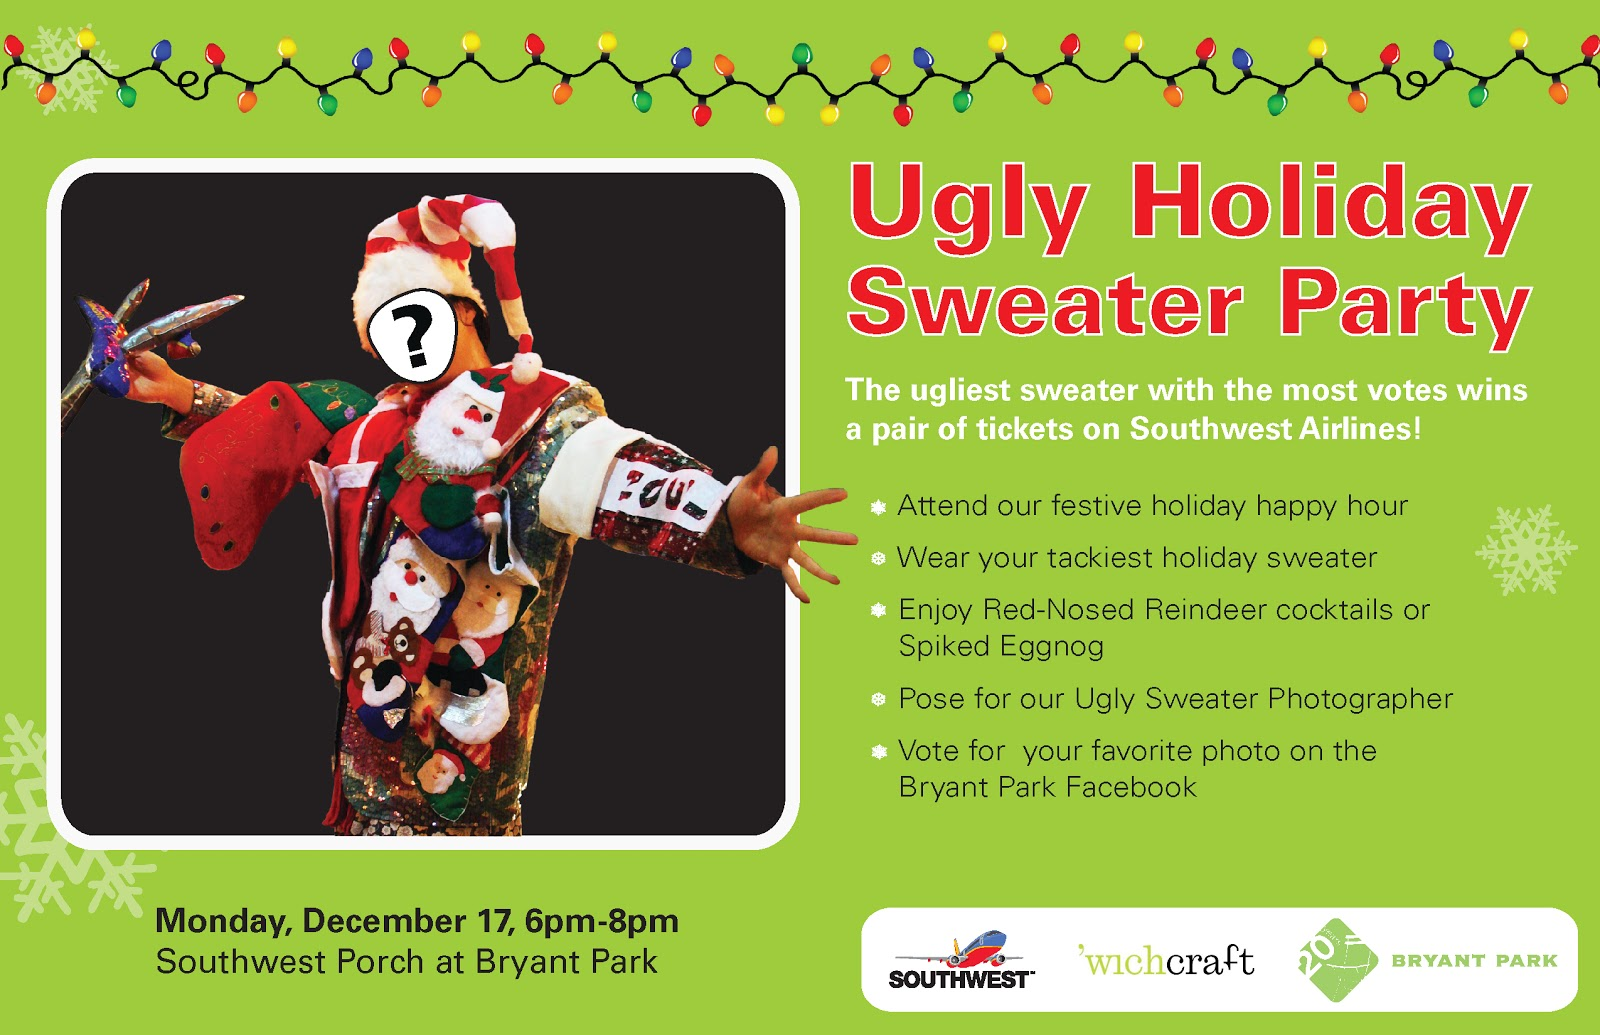 Ugly Christmas Sweater Invites is nice invitation template